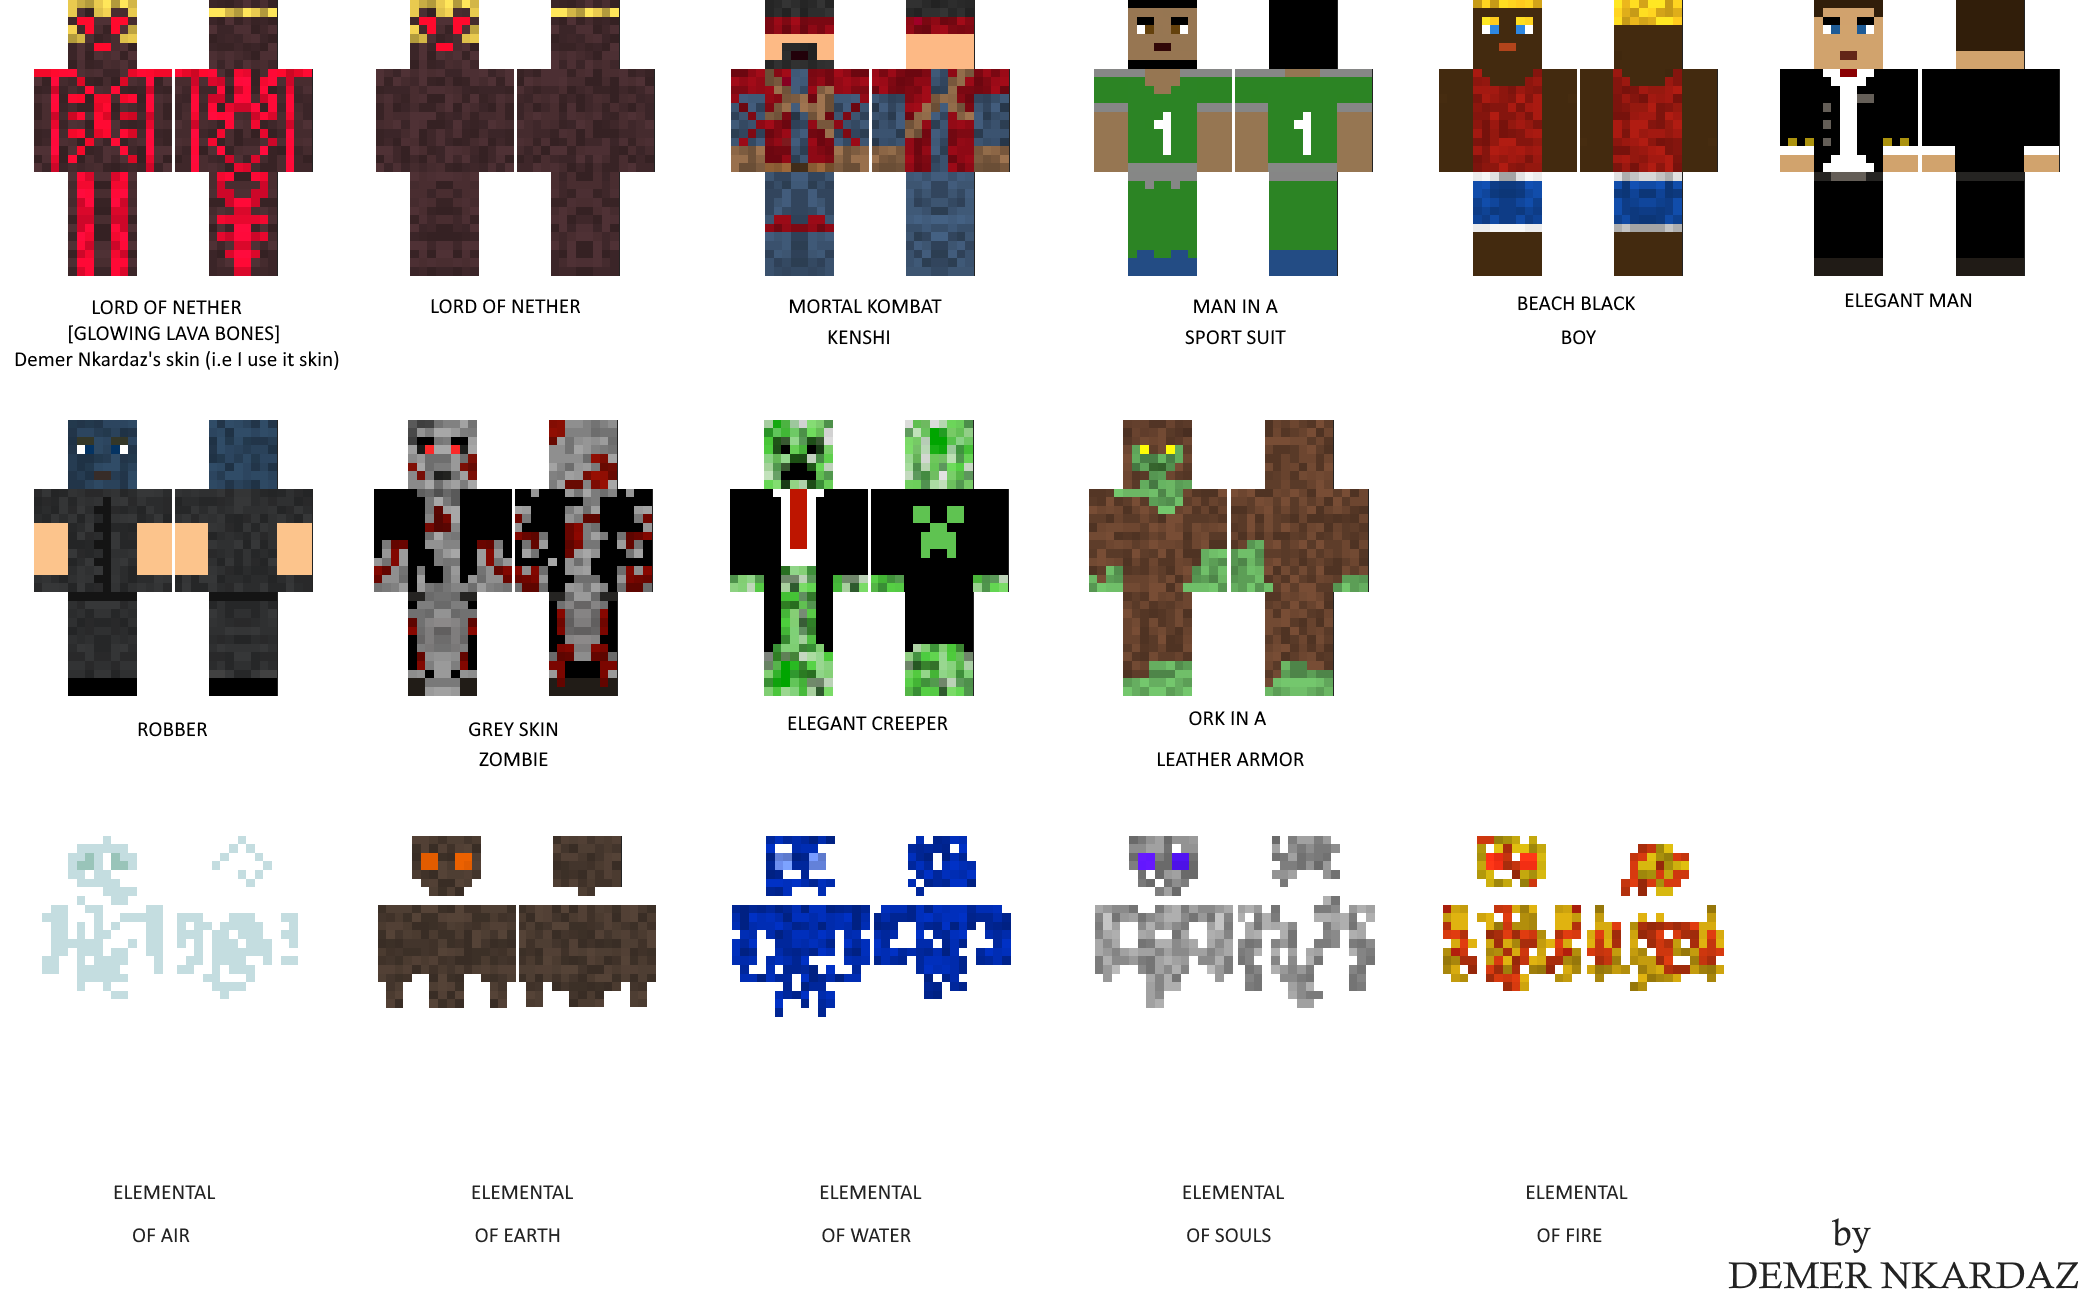 MINECRAFT] My created skins for minecraft in 10 by Demer-Nkardaz